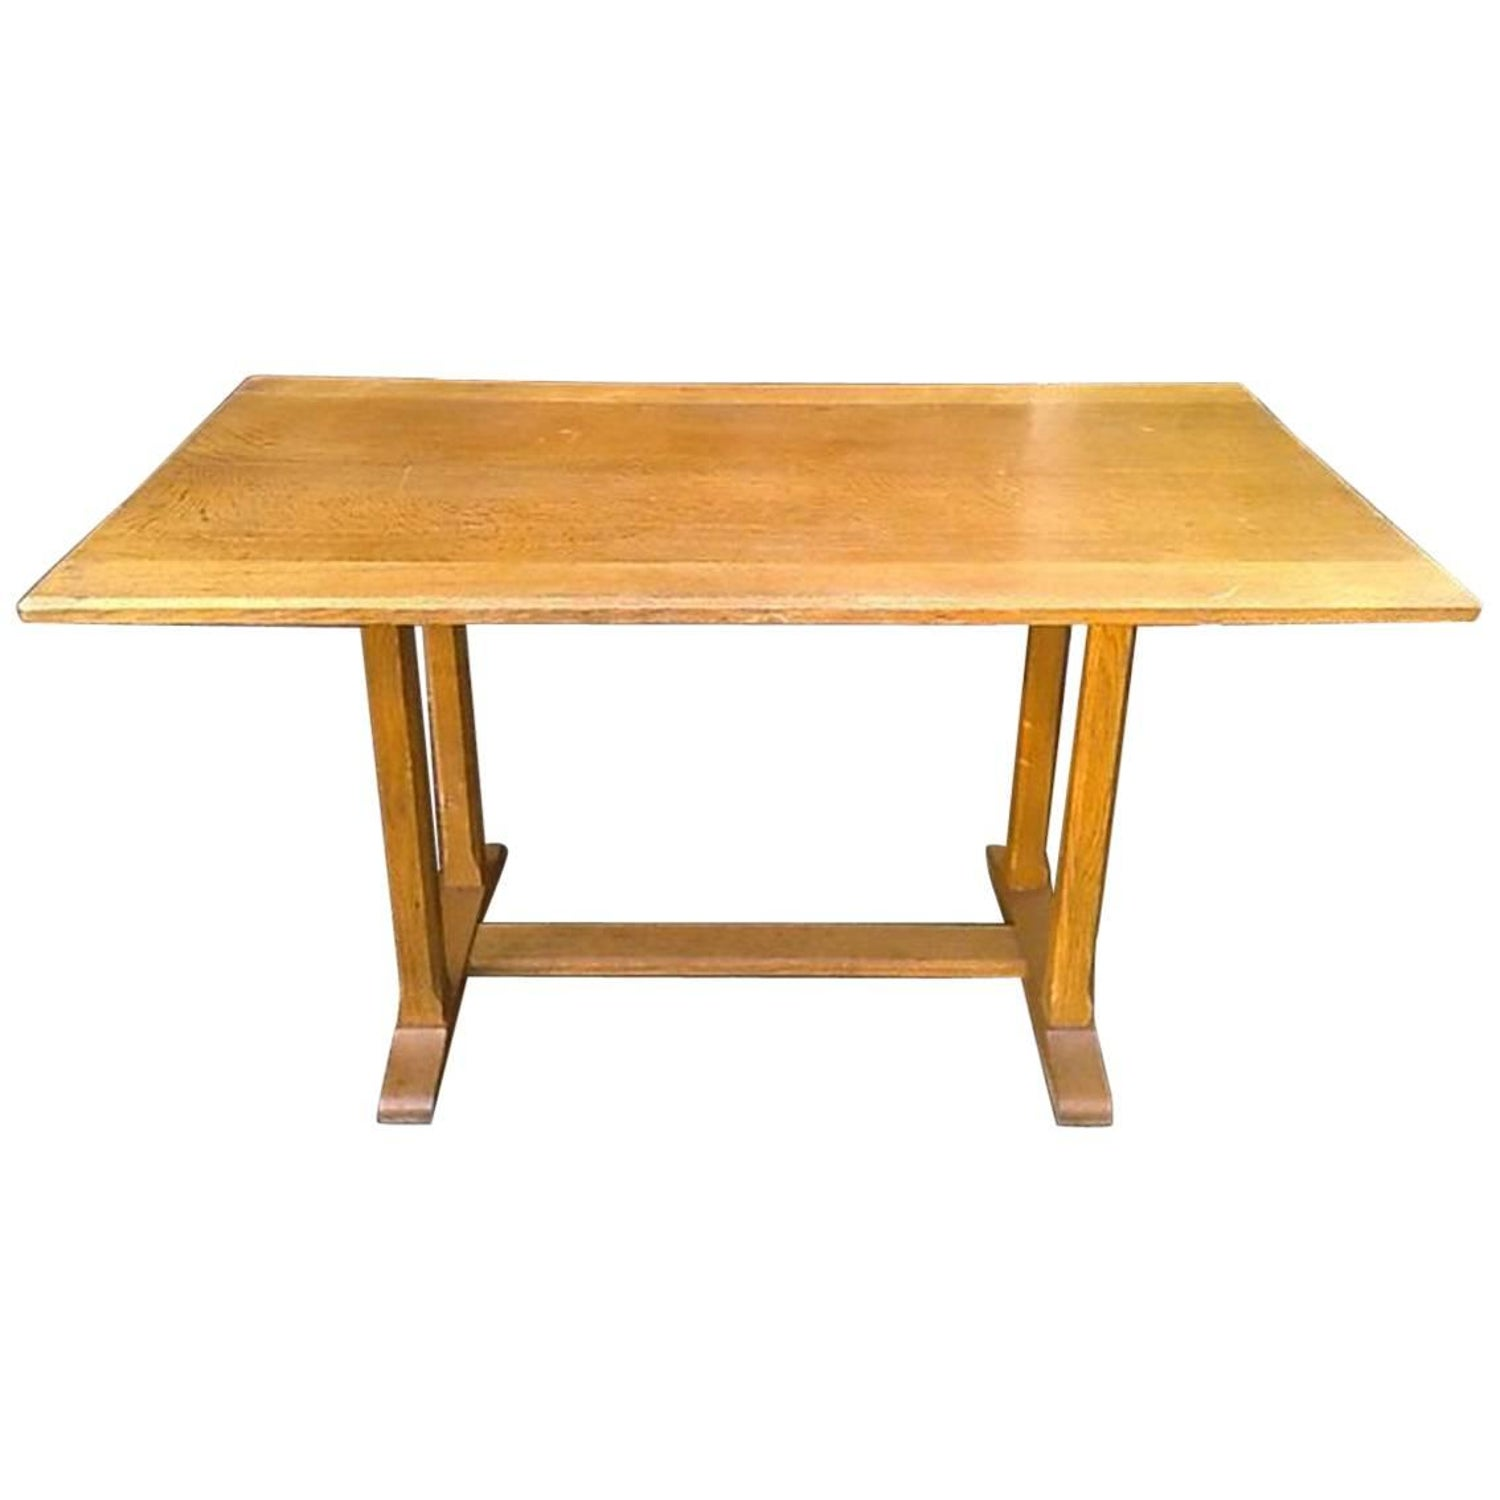 Antique Stickley Bros Arts and Crafts Mission Oak Round Dining